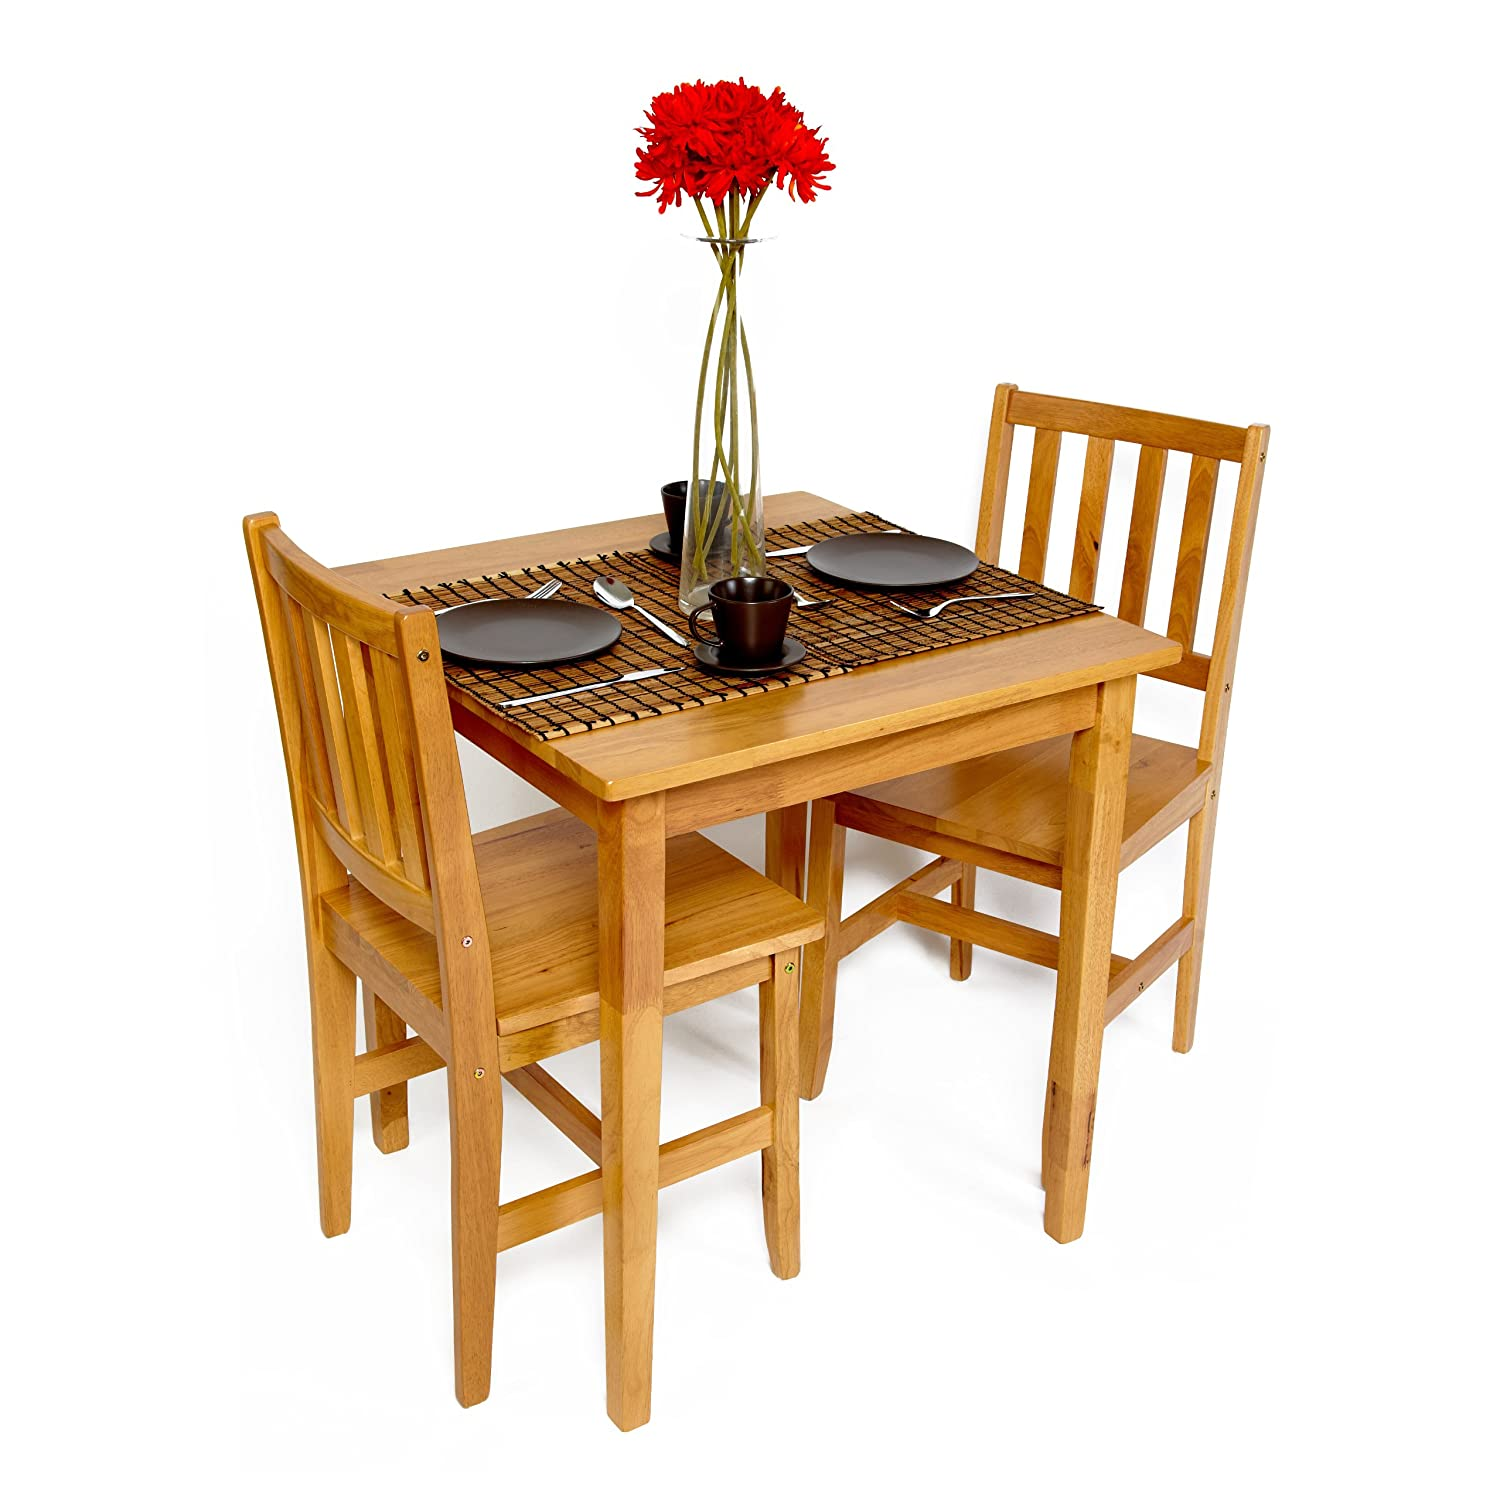 Table And Chairs Set Dining Bistro Small Cafe Tables Wood Wooden 2 Chair Kitchen